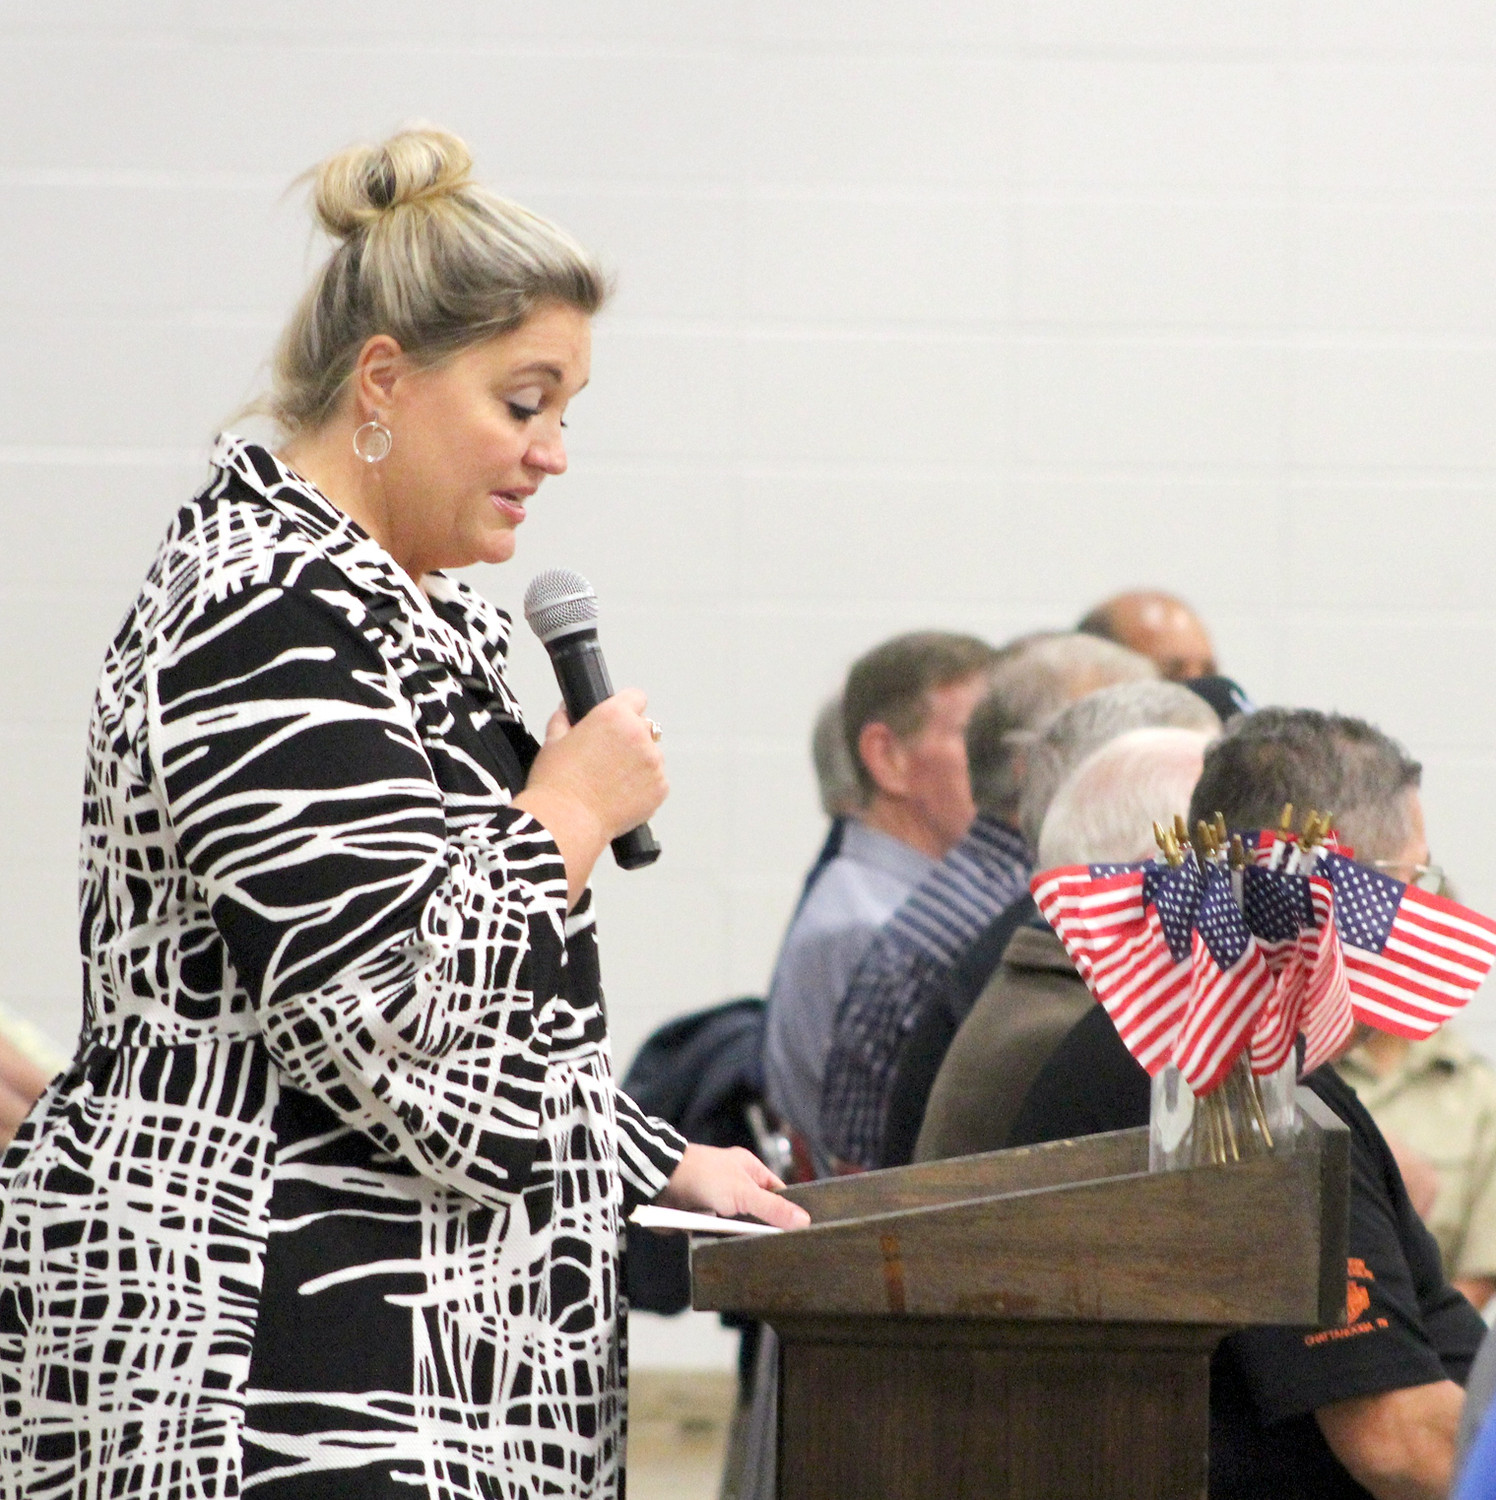 LISA EARBY, principal of E.L. Ross Elementary School, welcomes a group of veterans to the school's Veterans Day ceremony.